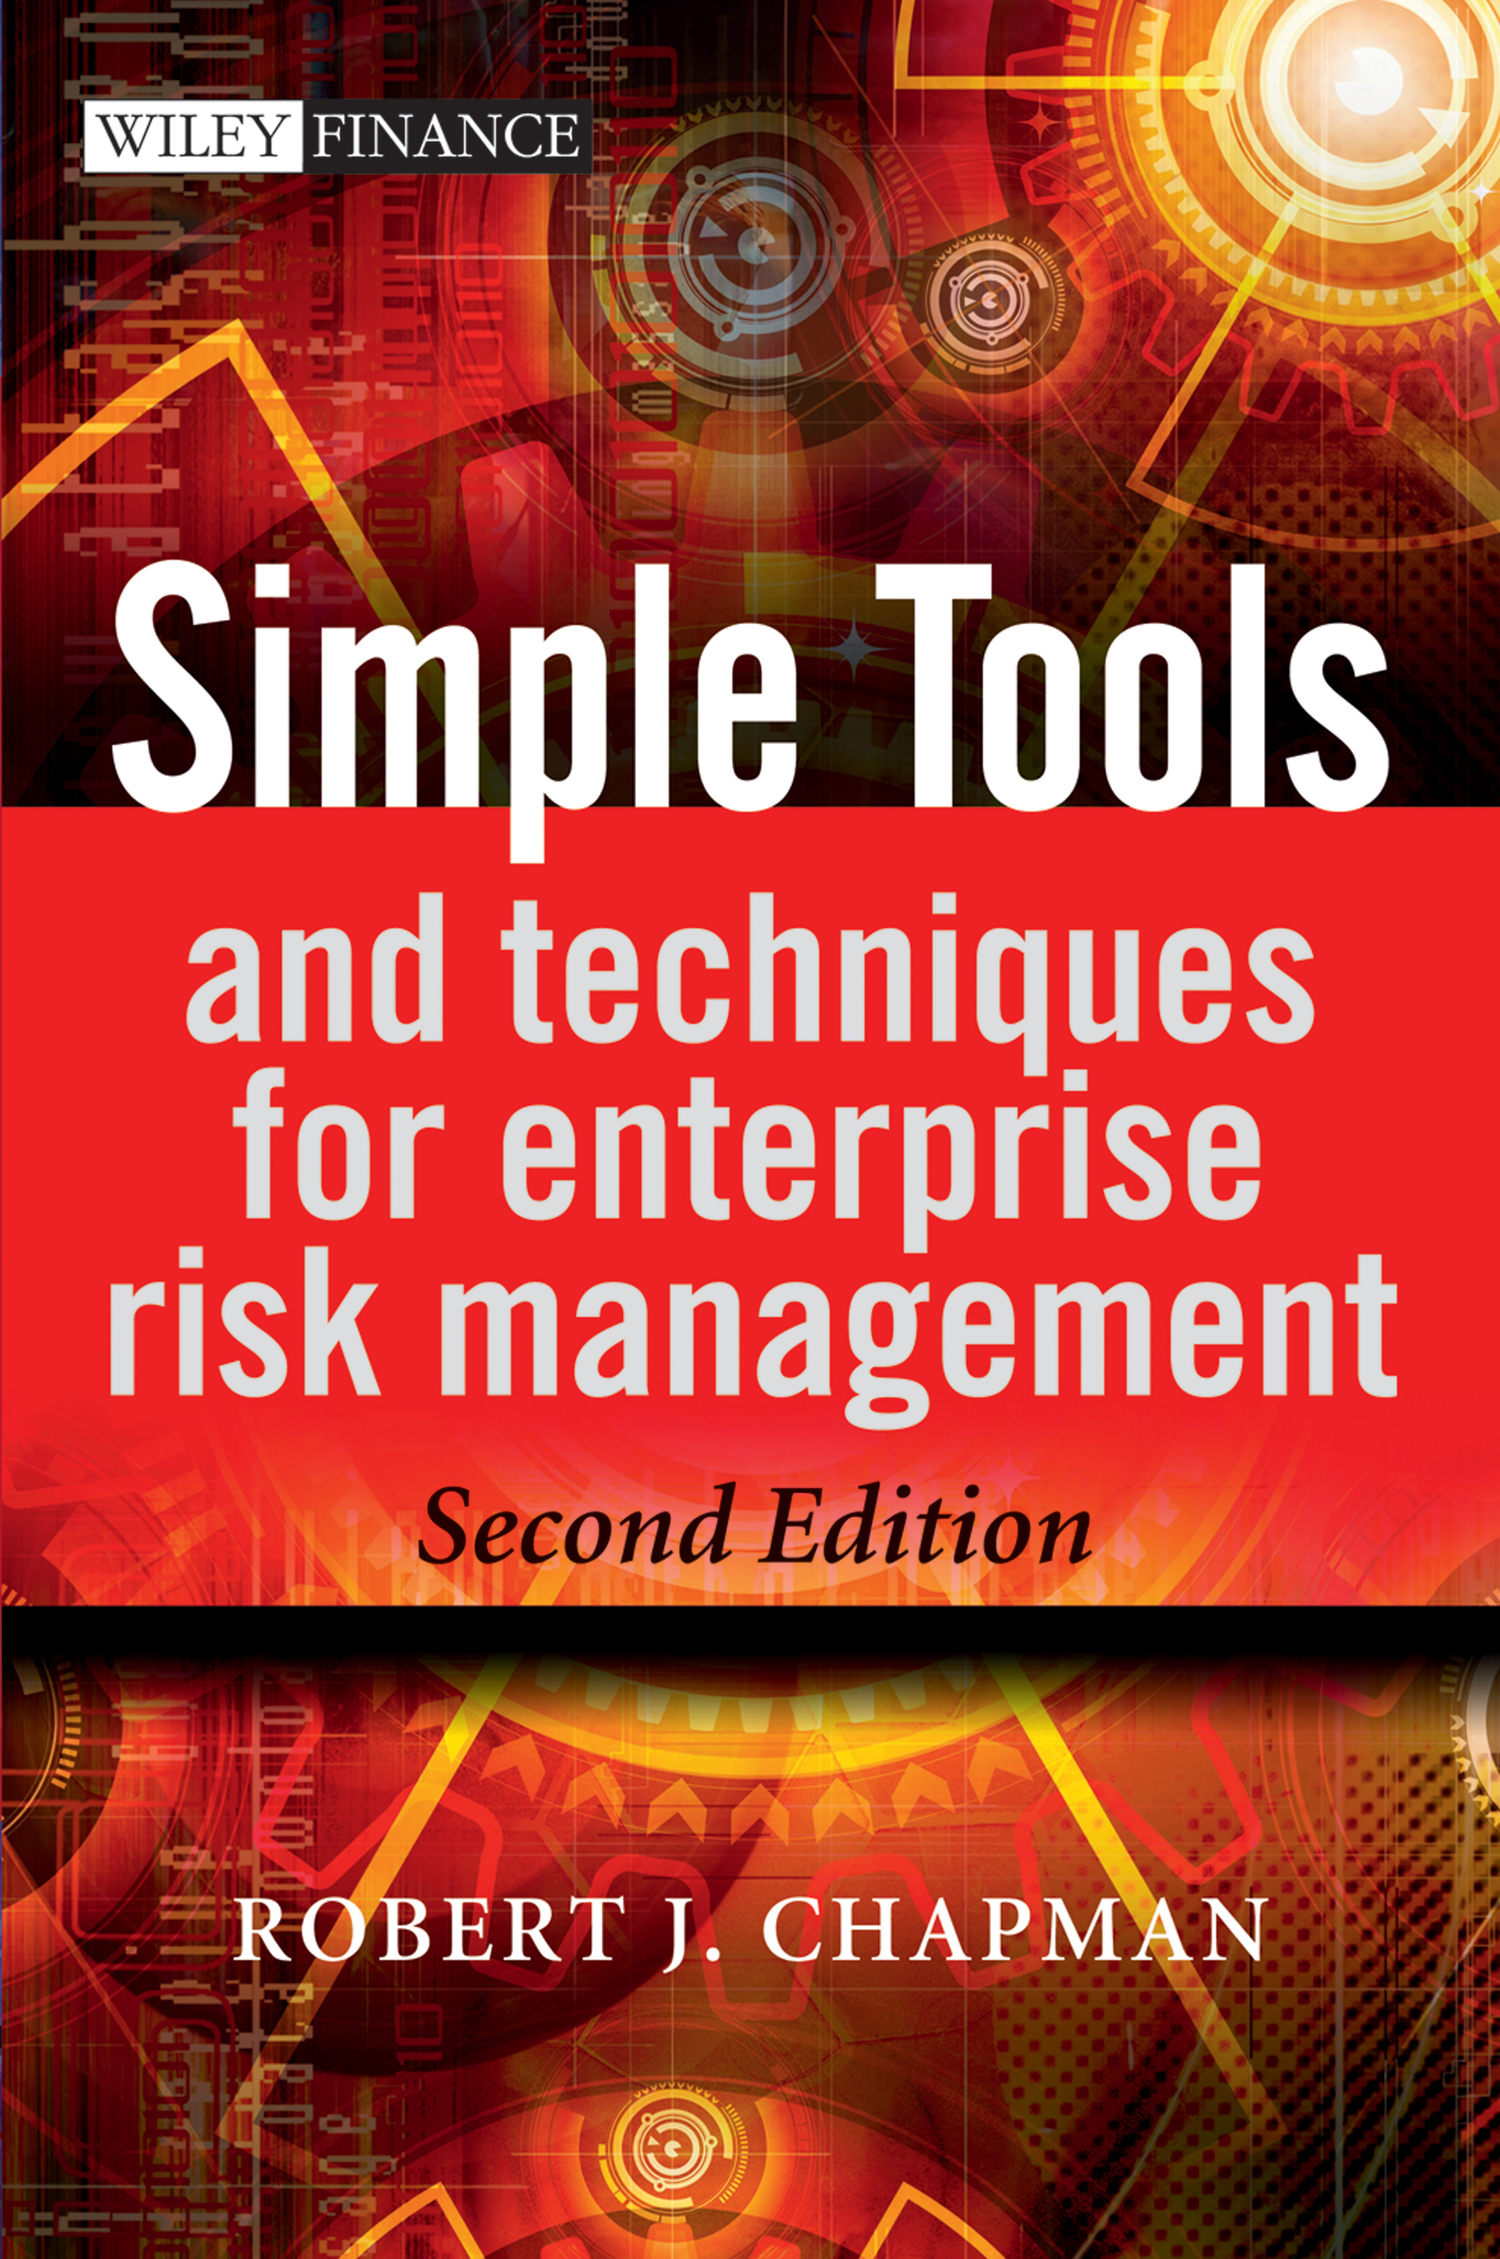 Robert Chapman J. Simple Tools and Techniques for Enterprise Risk Management ISBN: 9781119963219 mair william c enterprise risk management and coso a guide for directors executives and practitioners